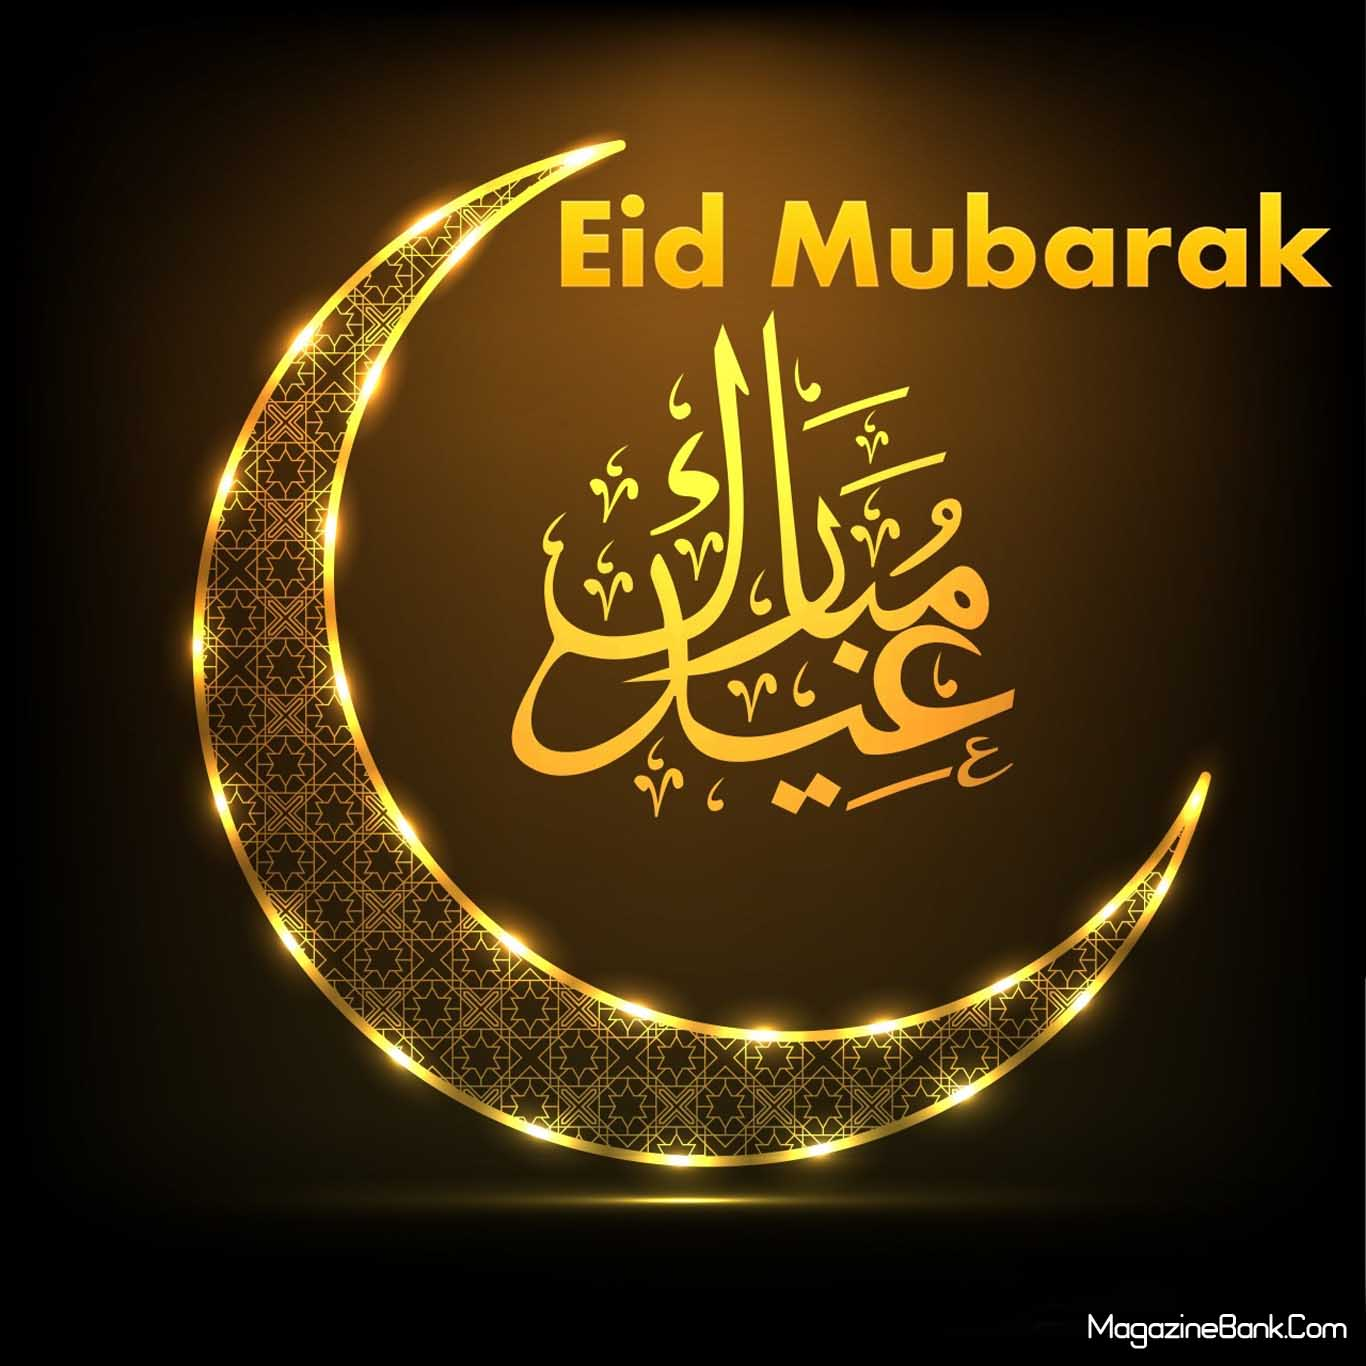 New latest eid mubarak hd wallpapers 2017 eid mubarak live eid mubarak wallpapers kristyandbryce Image collections